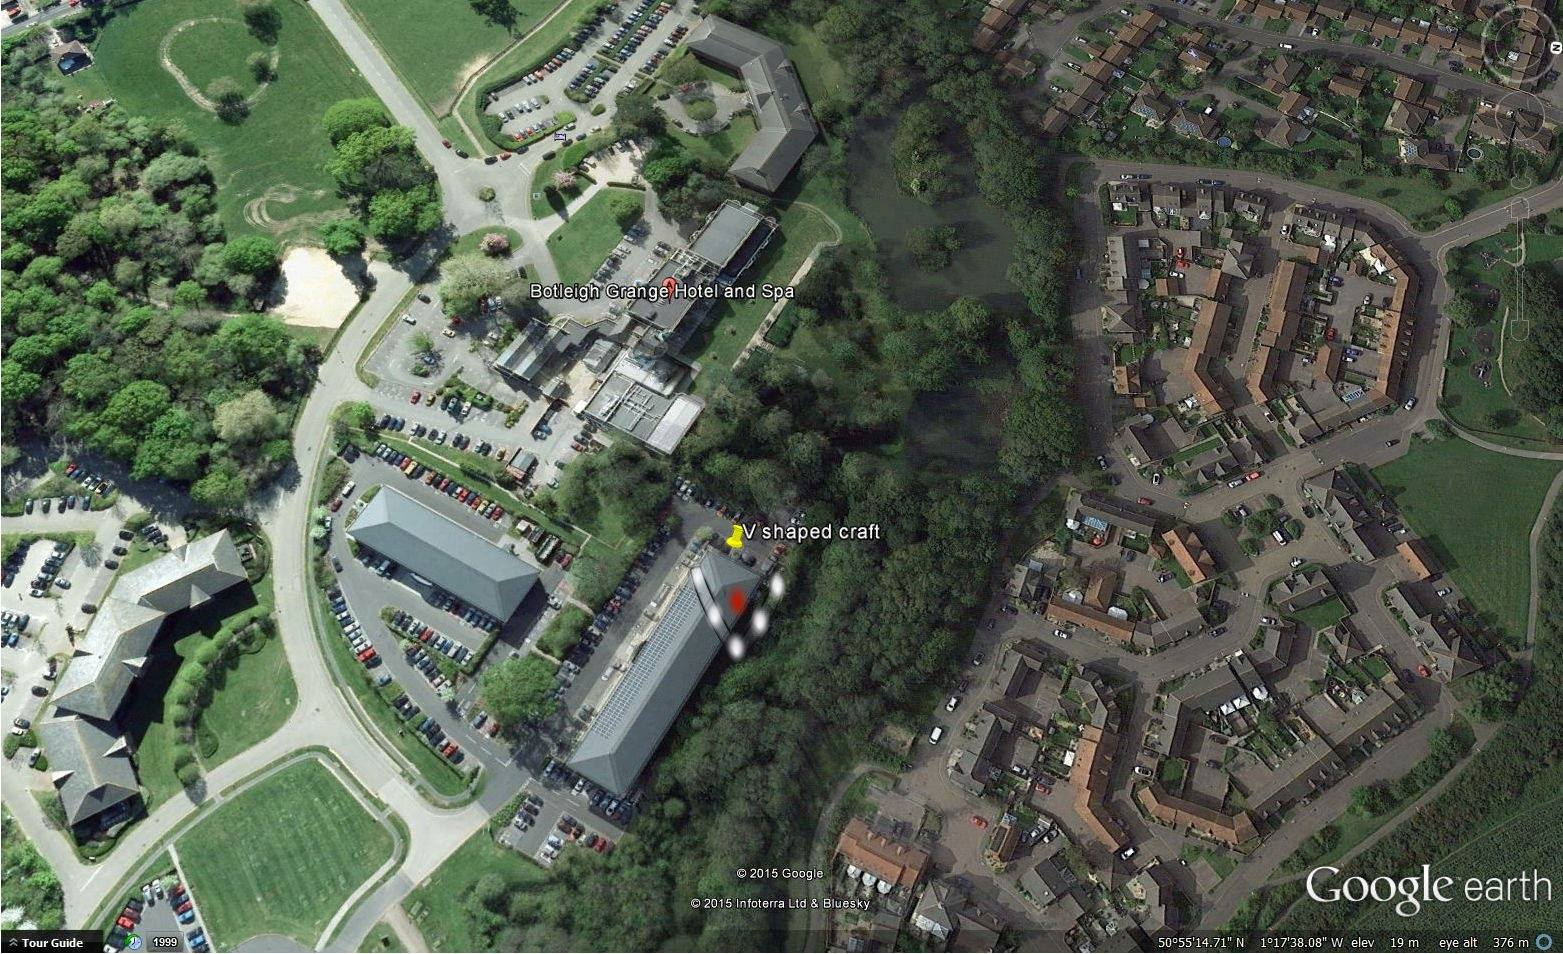 This Arial view shows just how Large the craft was compared to the building/surrounding area & the hotel over to the left